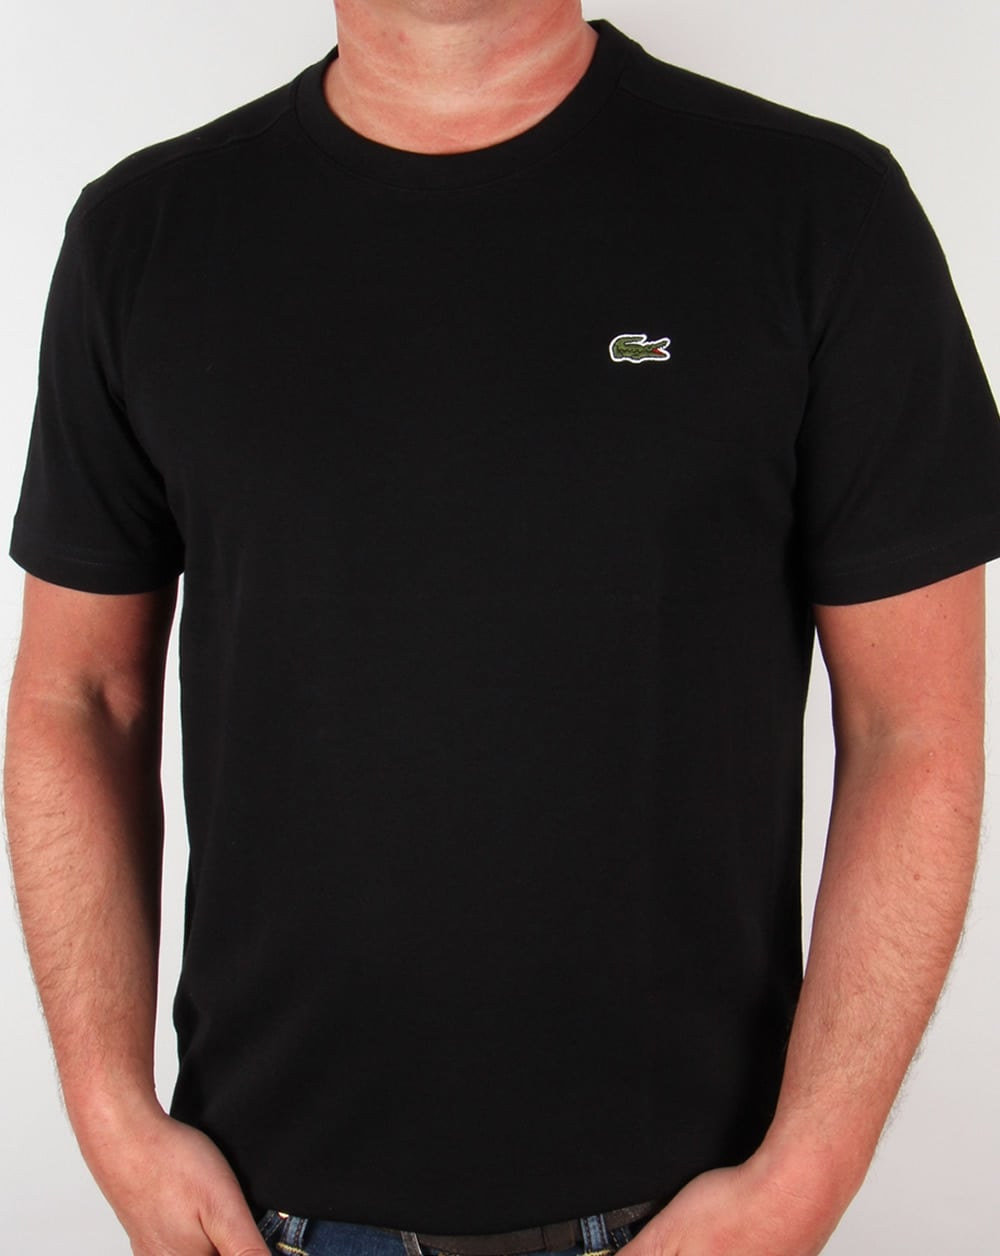 lacoste t shirt black tee crew neck sport mens. Black Bedroom Furniture Sets. Home Design Ideas